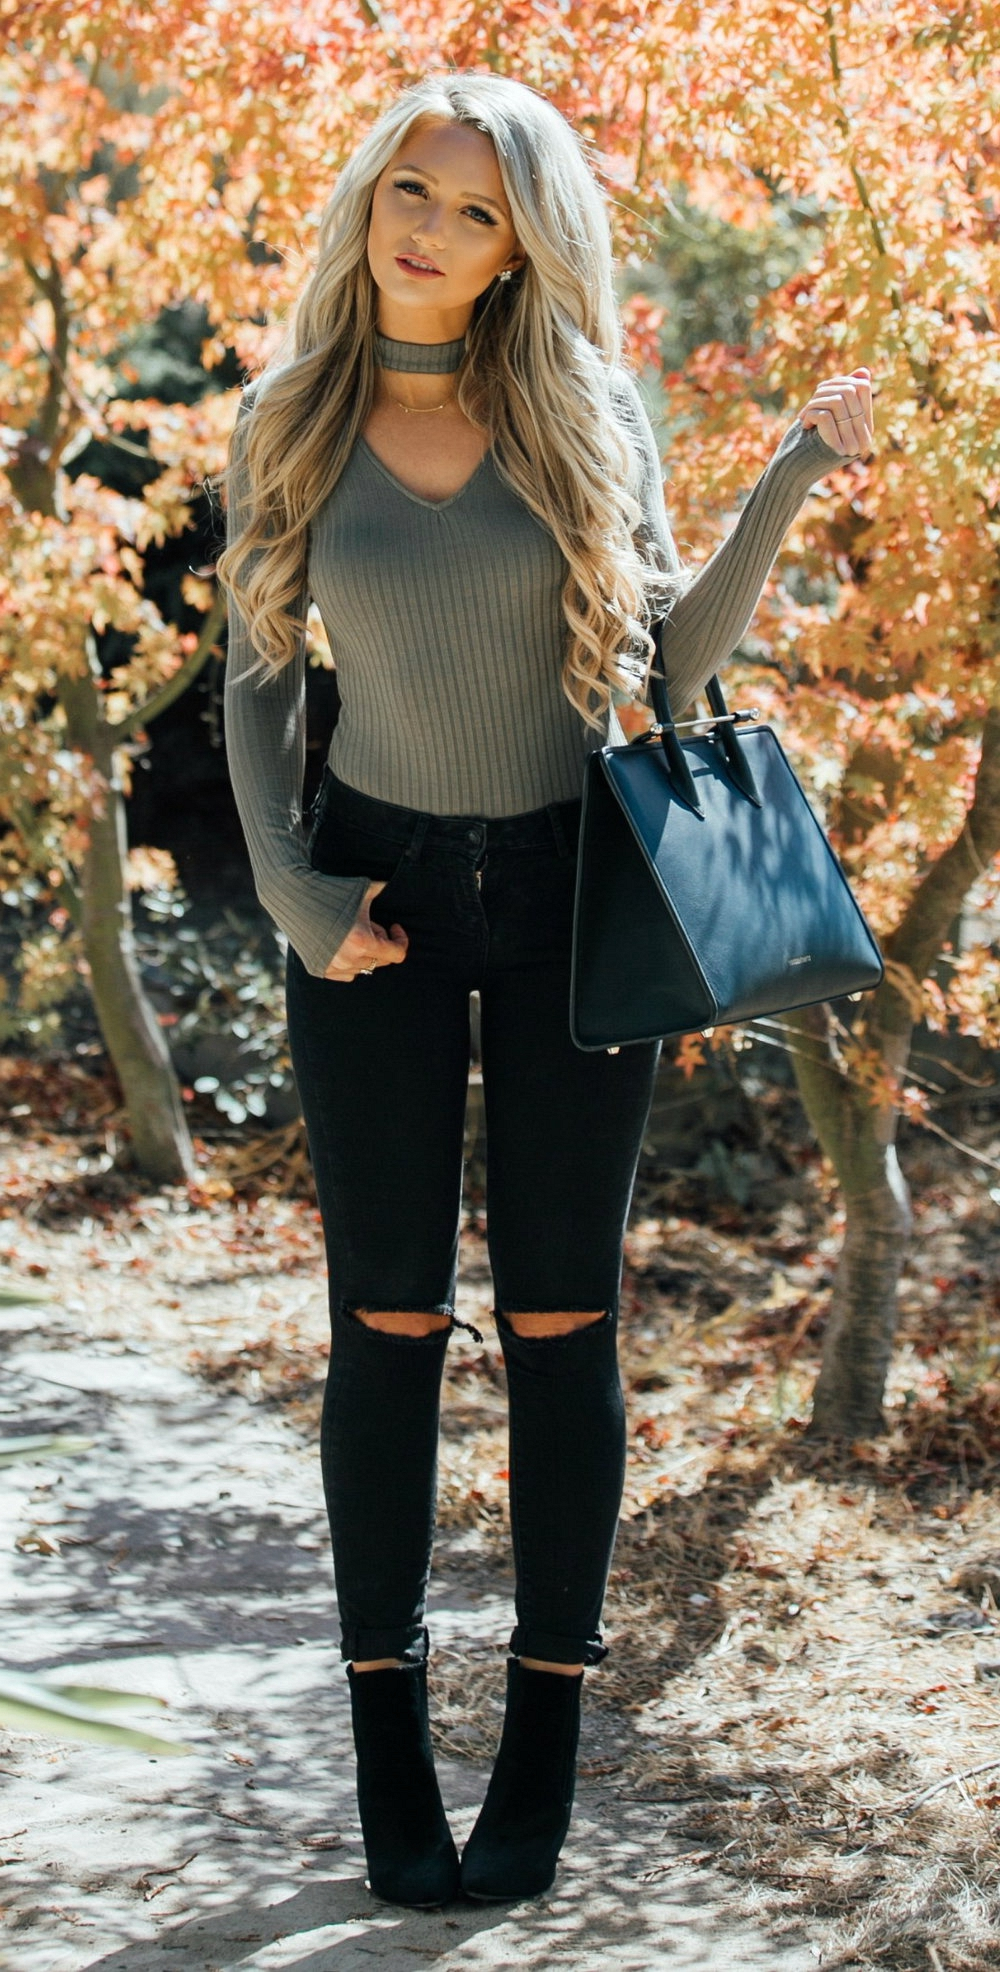 32 Outfit Ideas for Fall & Winter & Spring - Trendy ...